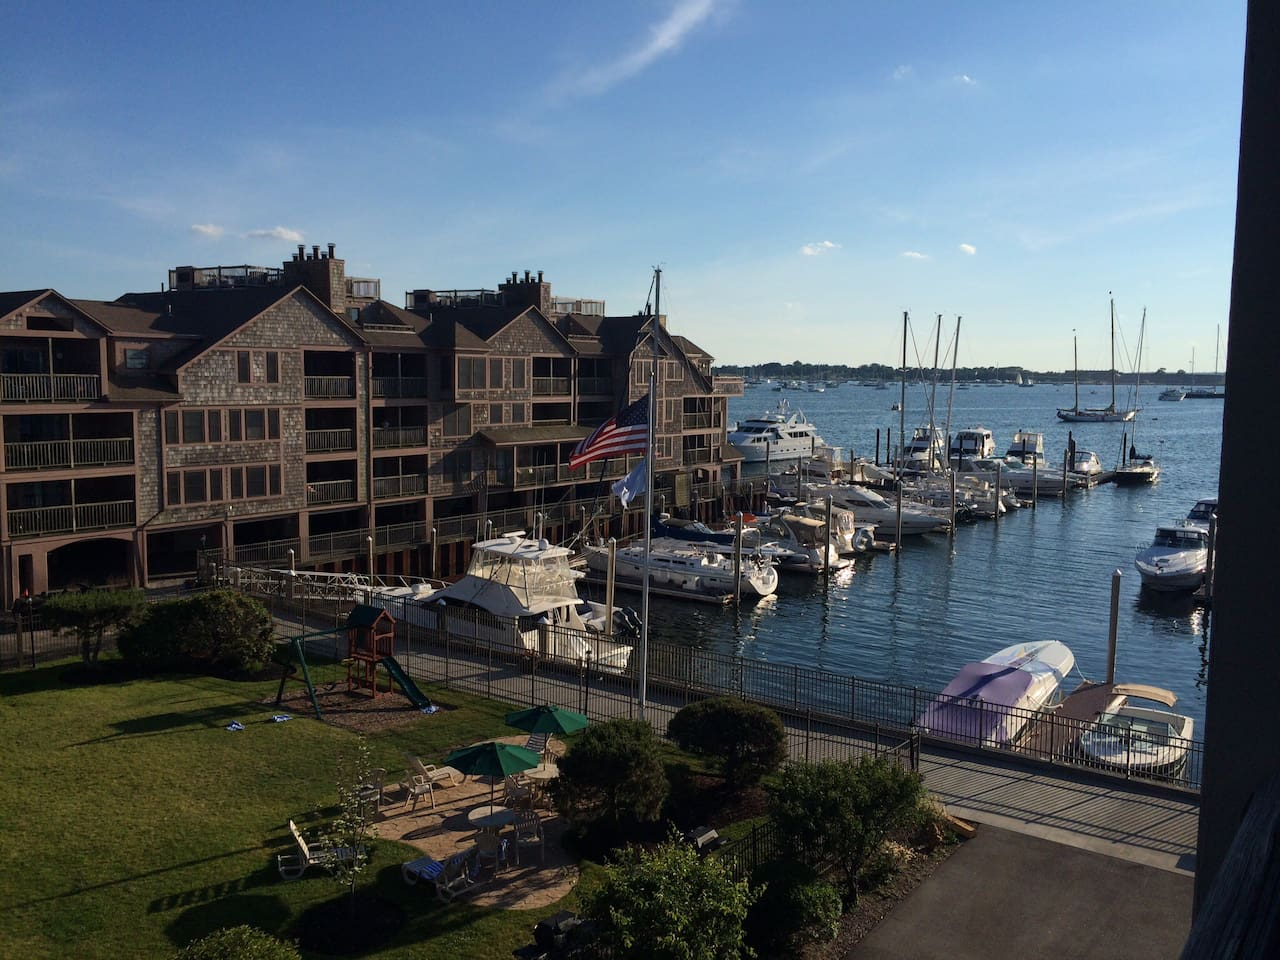 Harborside Resort with monster Yachts cruising by